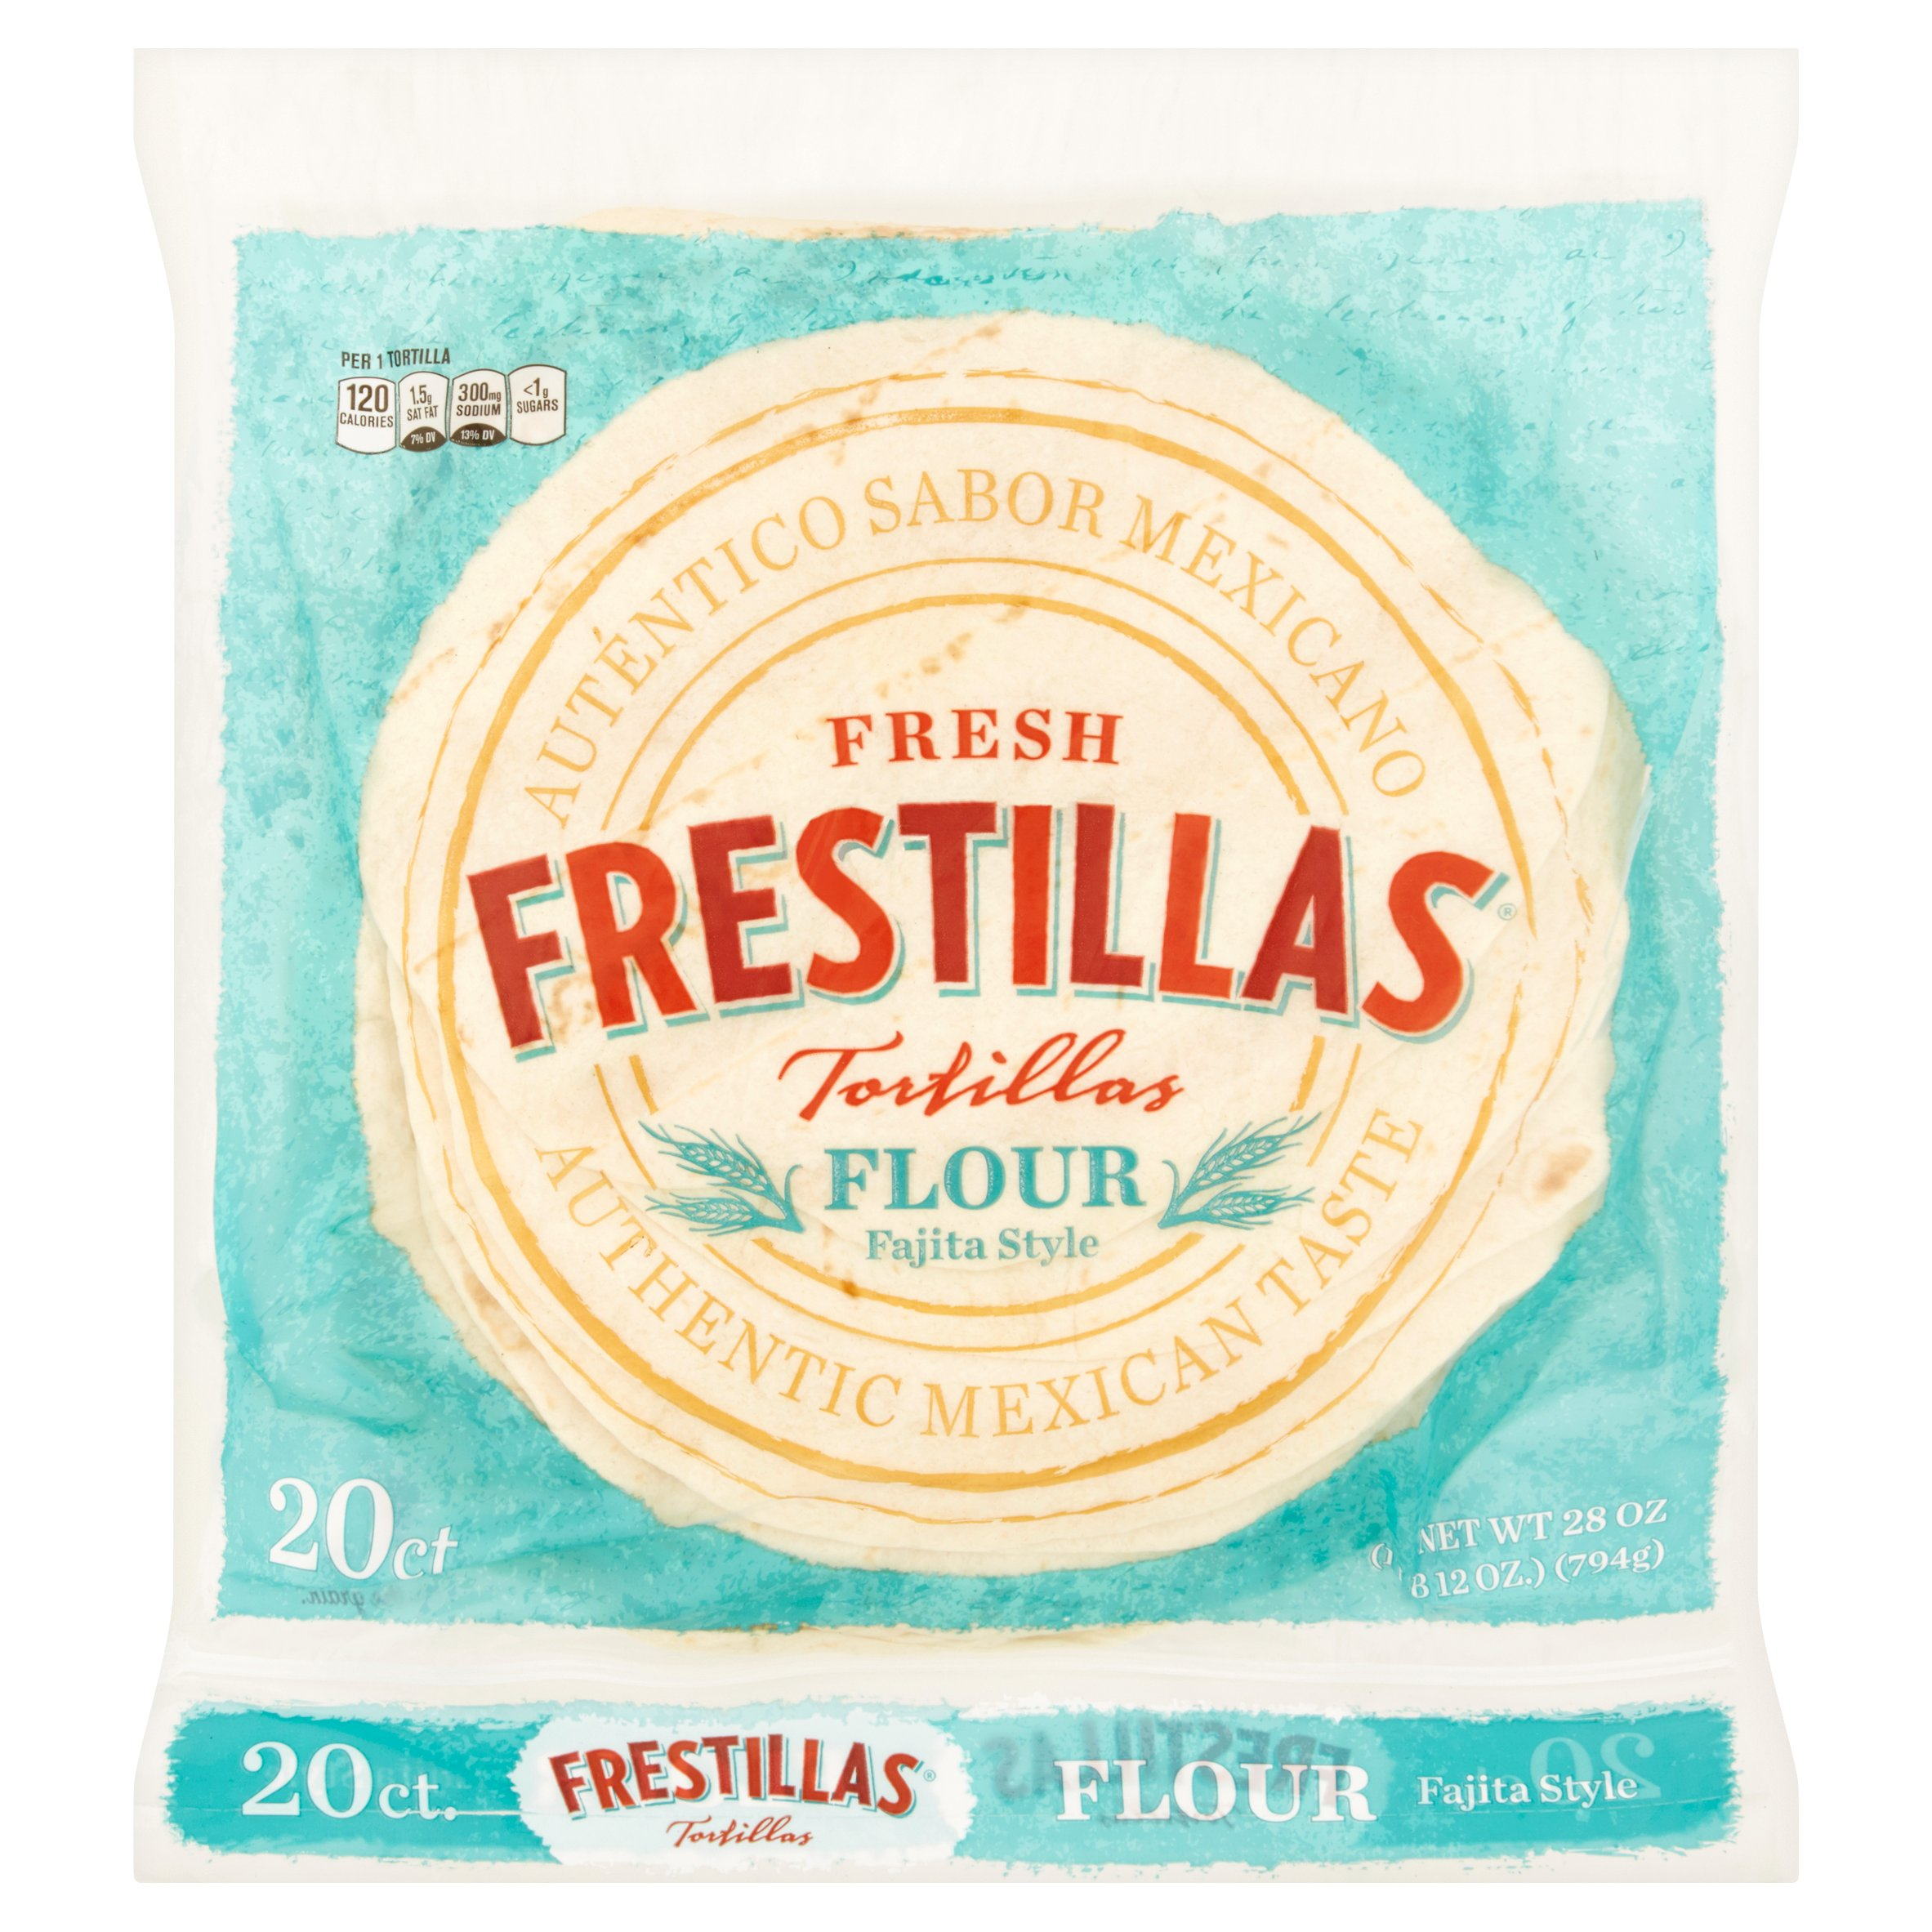 Fresh Frestillas Fajita Style Flour Tortillas, 20 count, 28 oz